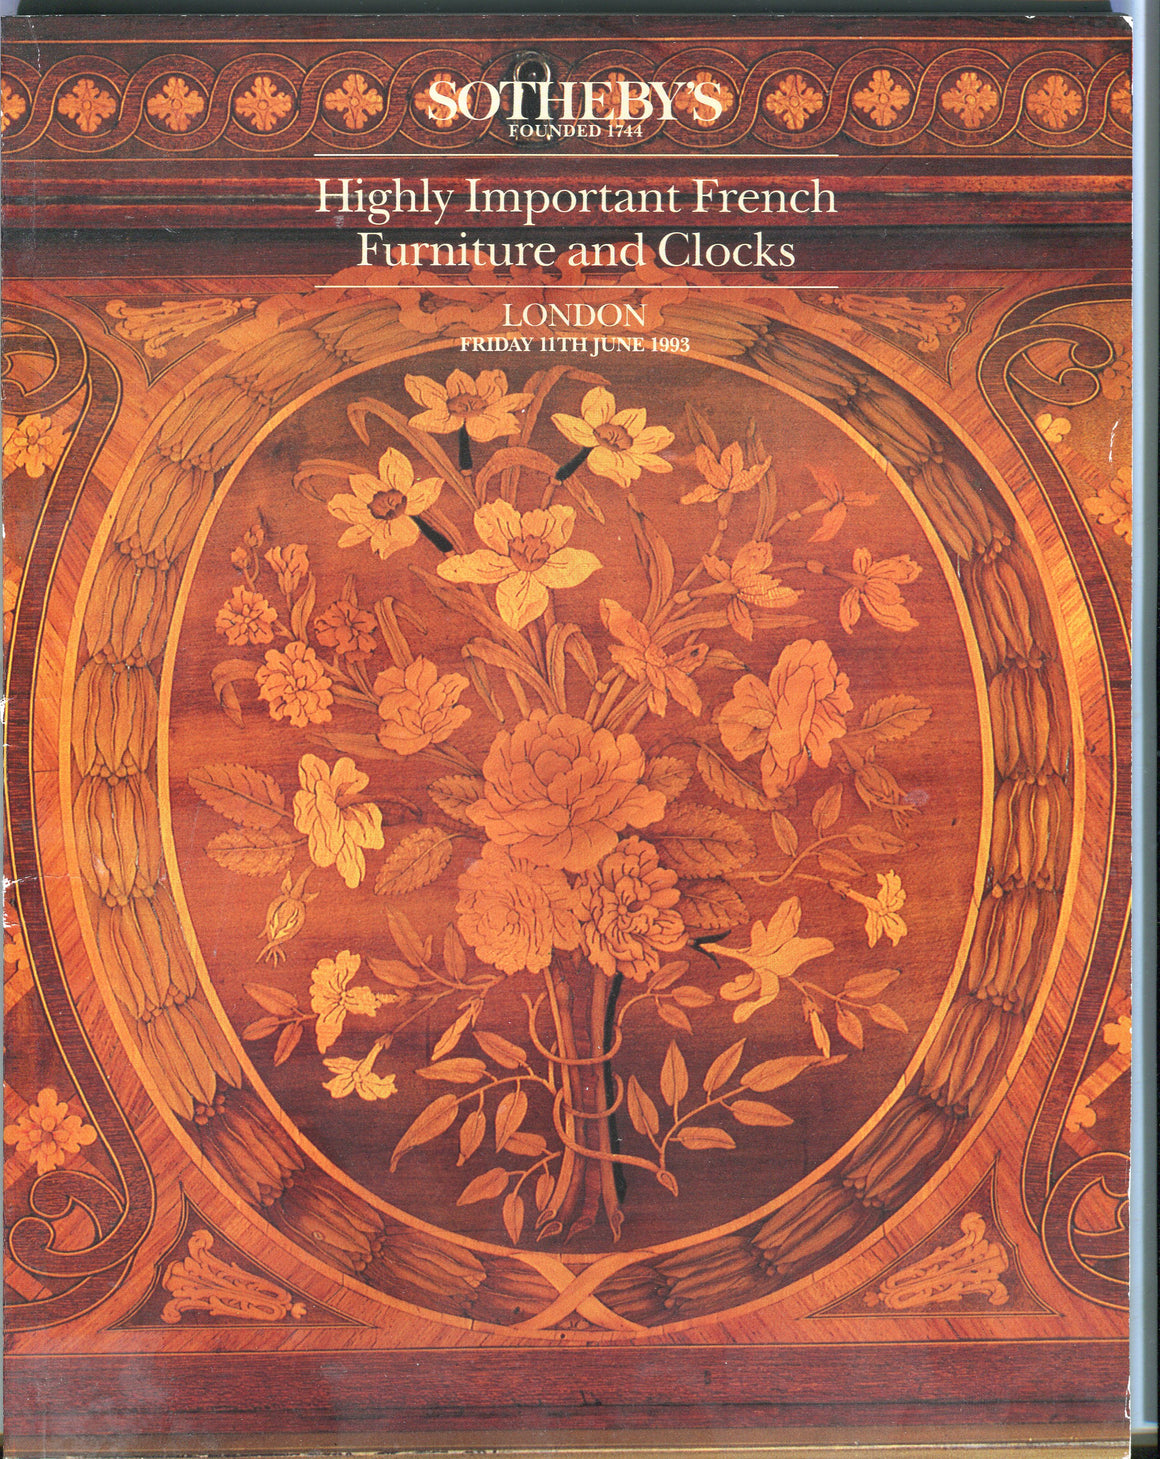 Sothebys Auction Catalog June 11 1993 Highly Important French Furniture & Clocks